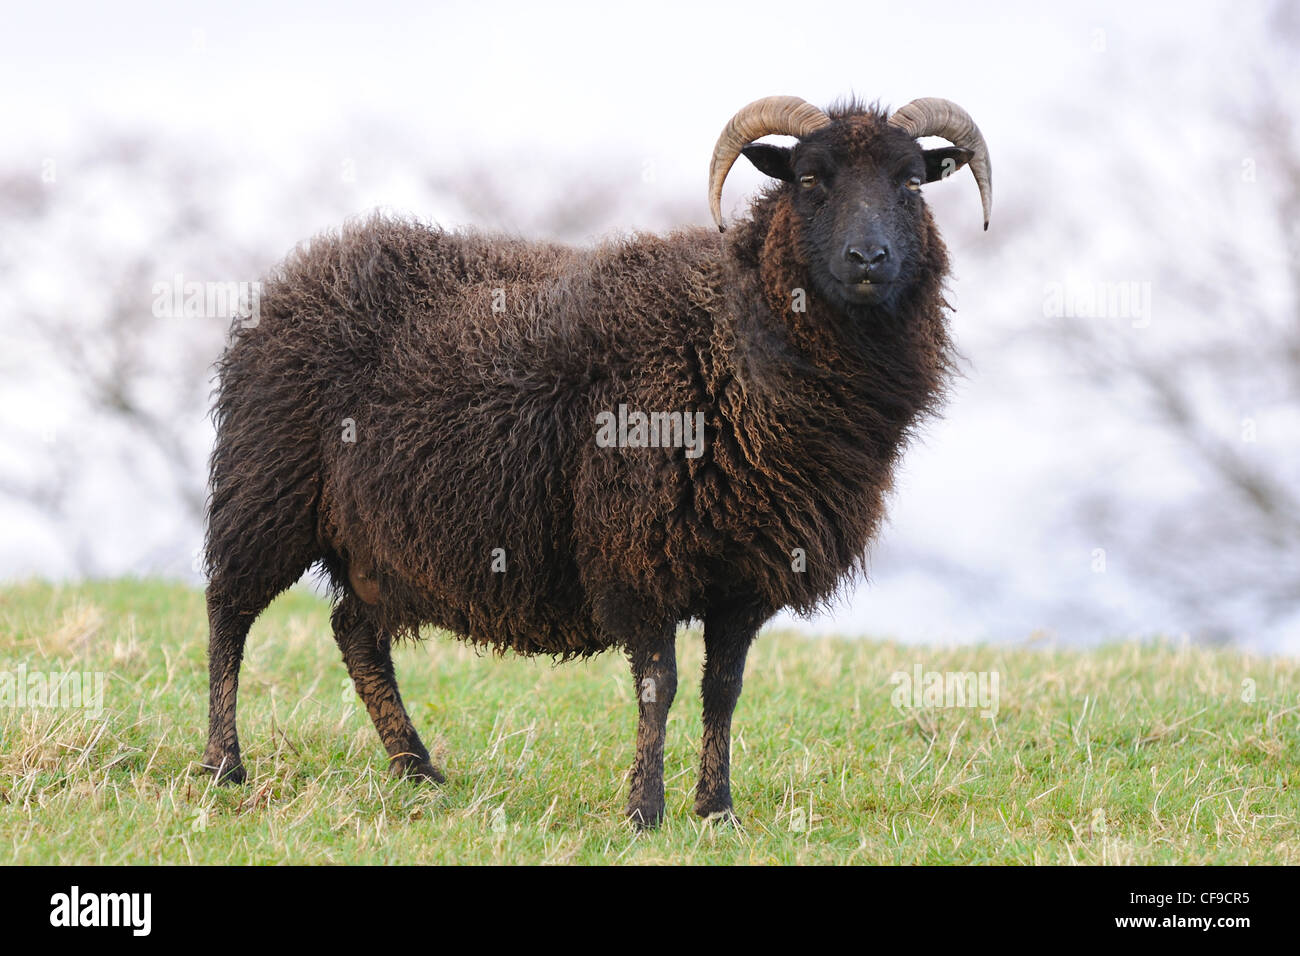 The Hebridean Black sheep are no longer considered rare and are at home on rough grazing in Scotland and the UK. - Stock Image